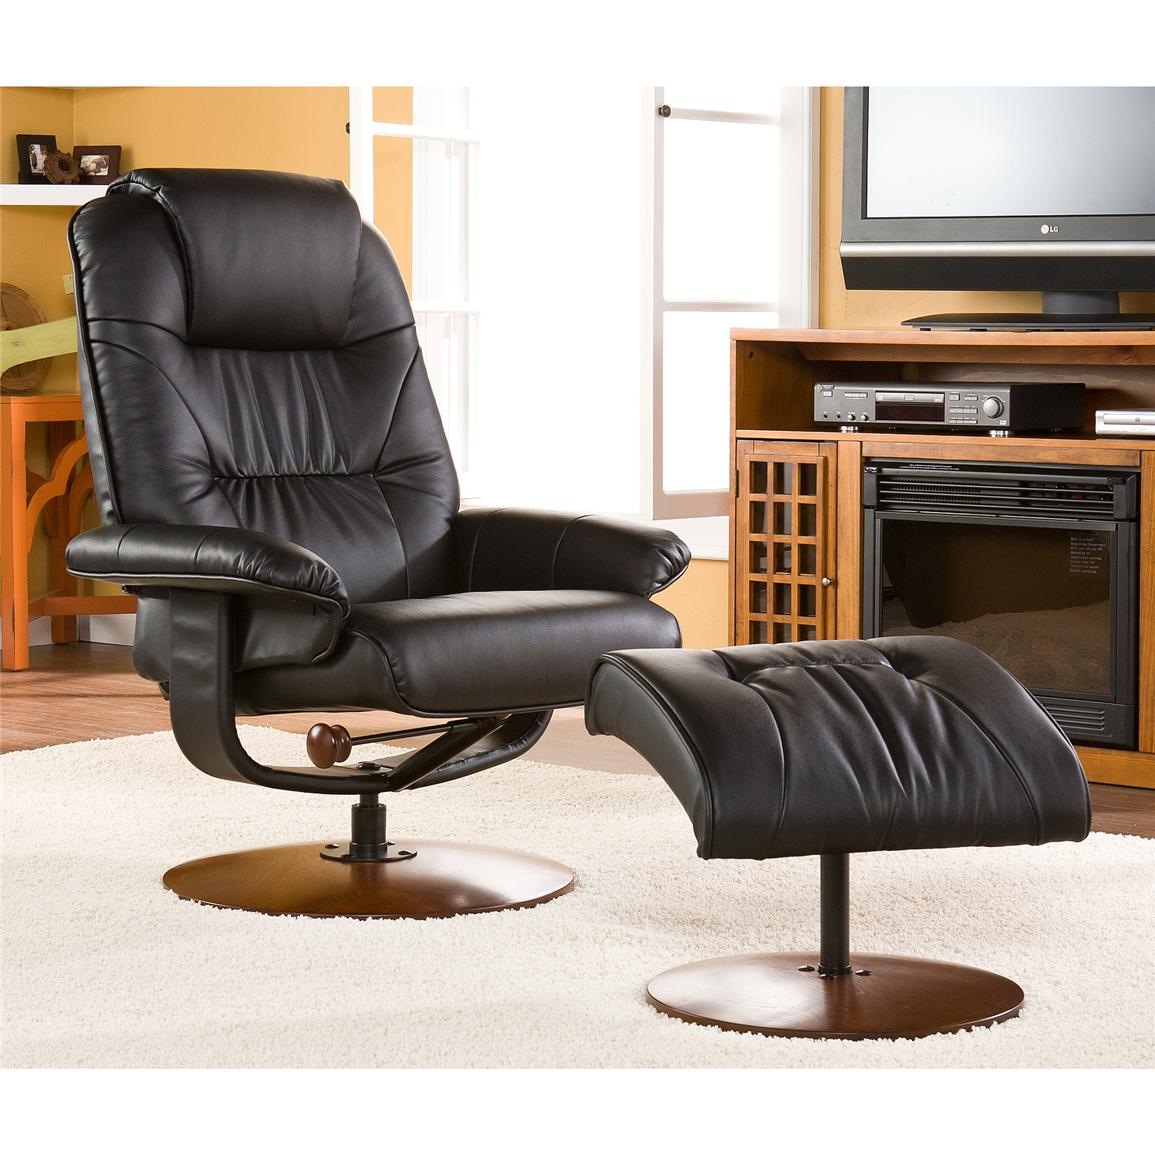 Parrish Leather Recliner and Ottoman, Black